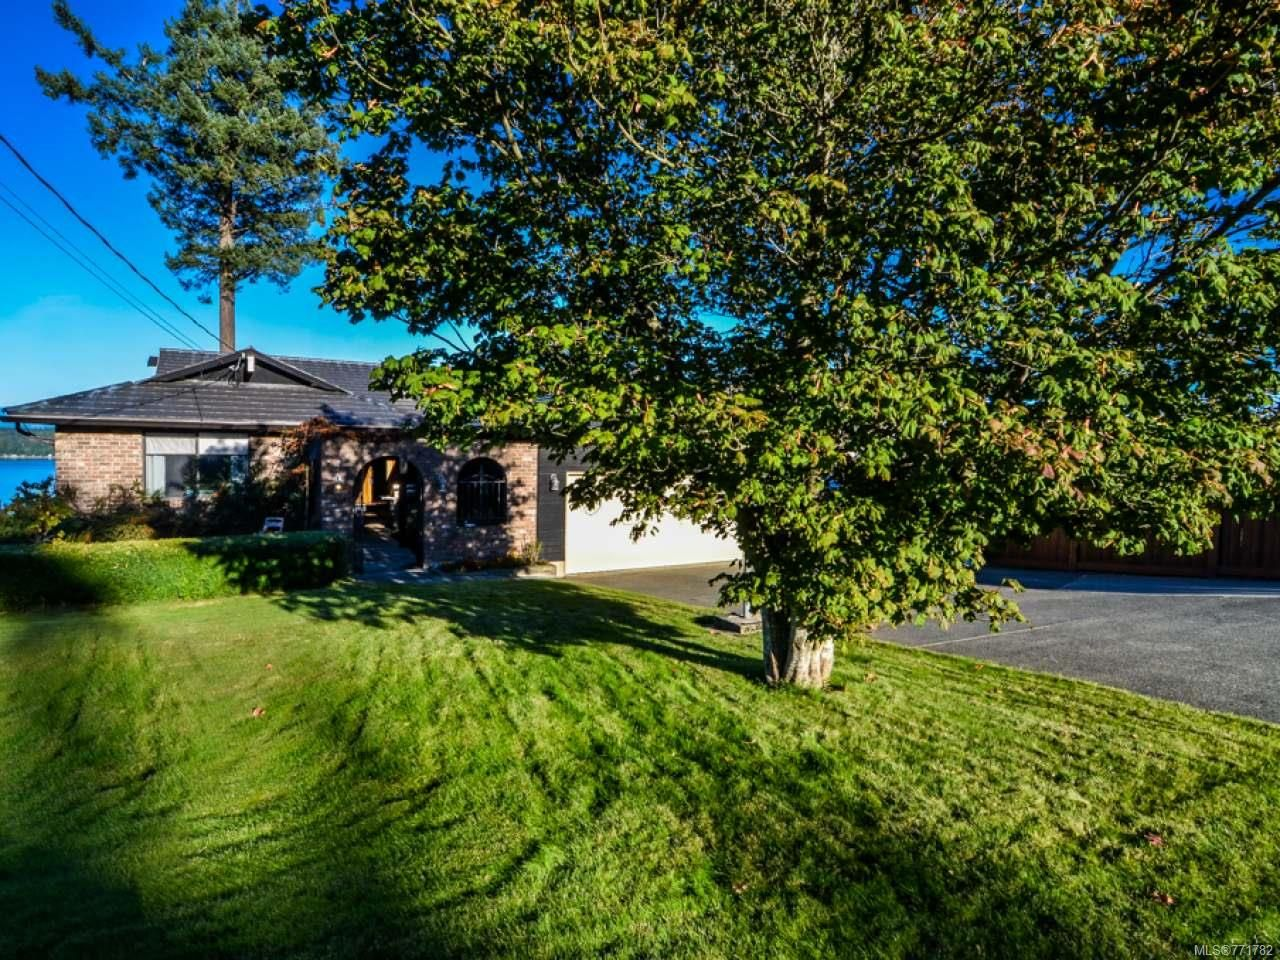 Photo 3: Photos: 451 S McLean St in CAMPBELL RIVER: CR Campbell River Central House for sale (Campbell River)  : MLS®# 771782